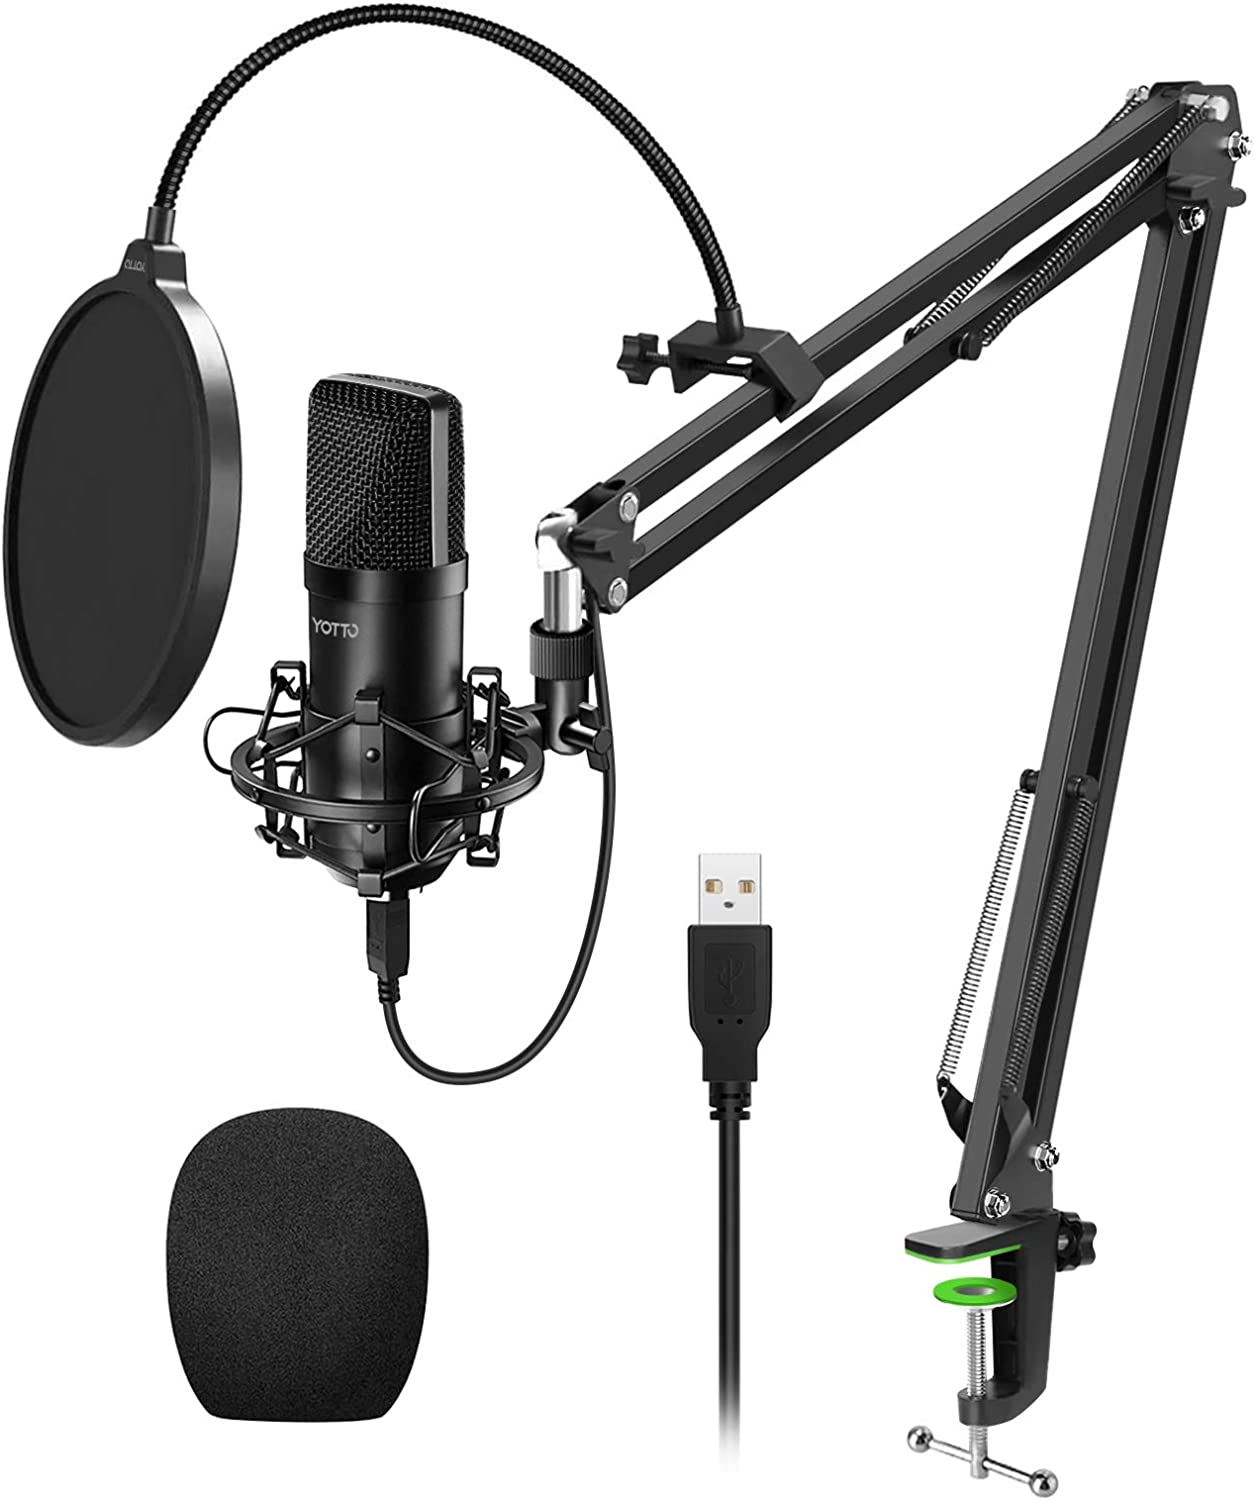 Streaming Shock Mount YouTube Recording with Pop Filter YOTTO USB Microphone 192KHZ//24BIT Condenser Cardioid Microphone Plug /& Play PC Computer Mic for Podcast Gaming Mic Stand